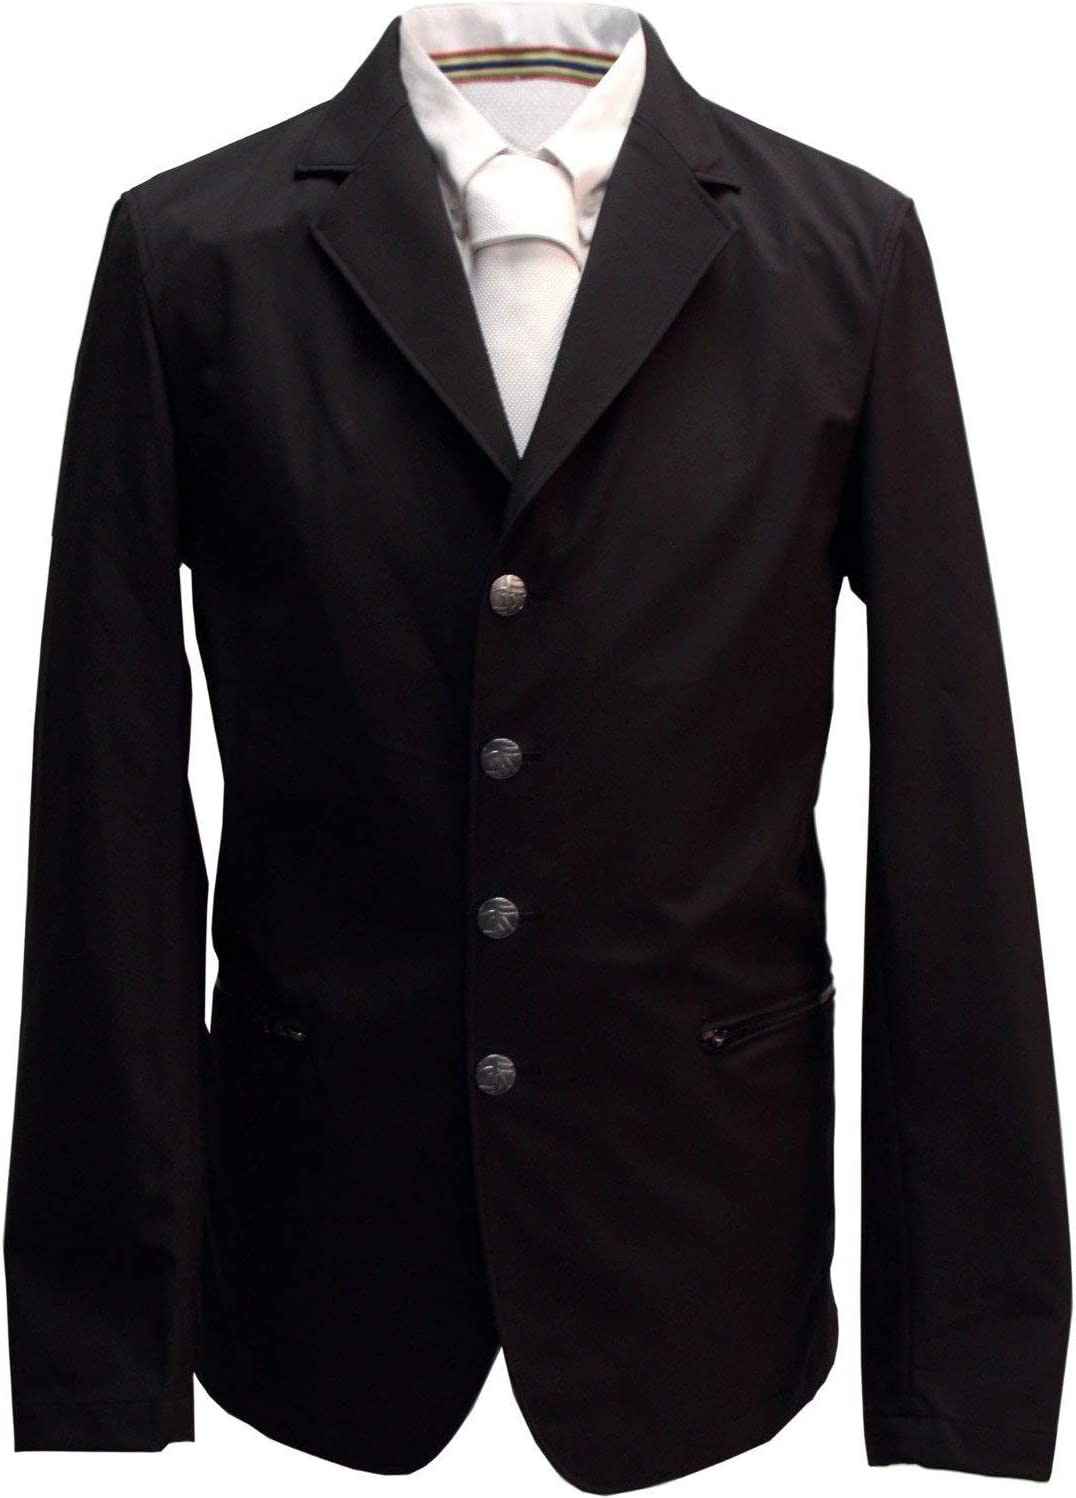 Horseware Mens Fort Worth Mall Woven Bombing free shipping Jacket Competition